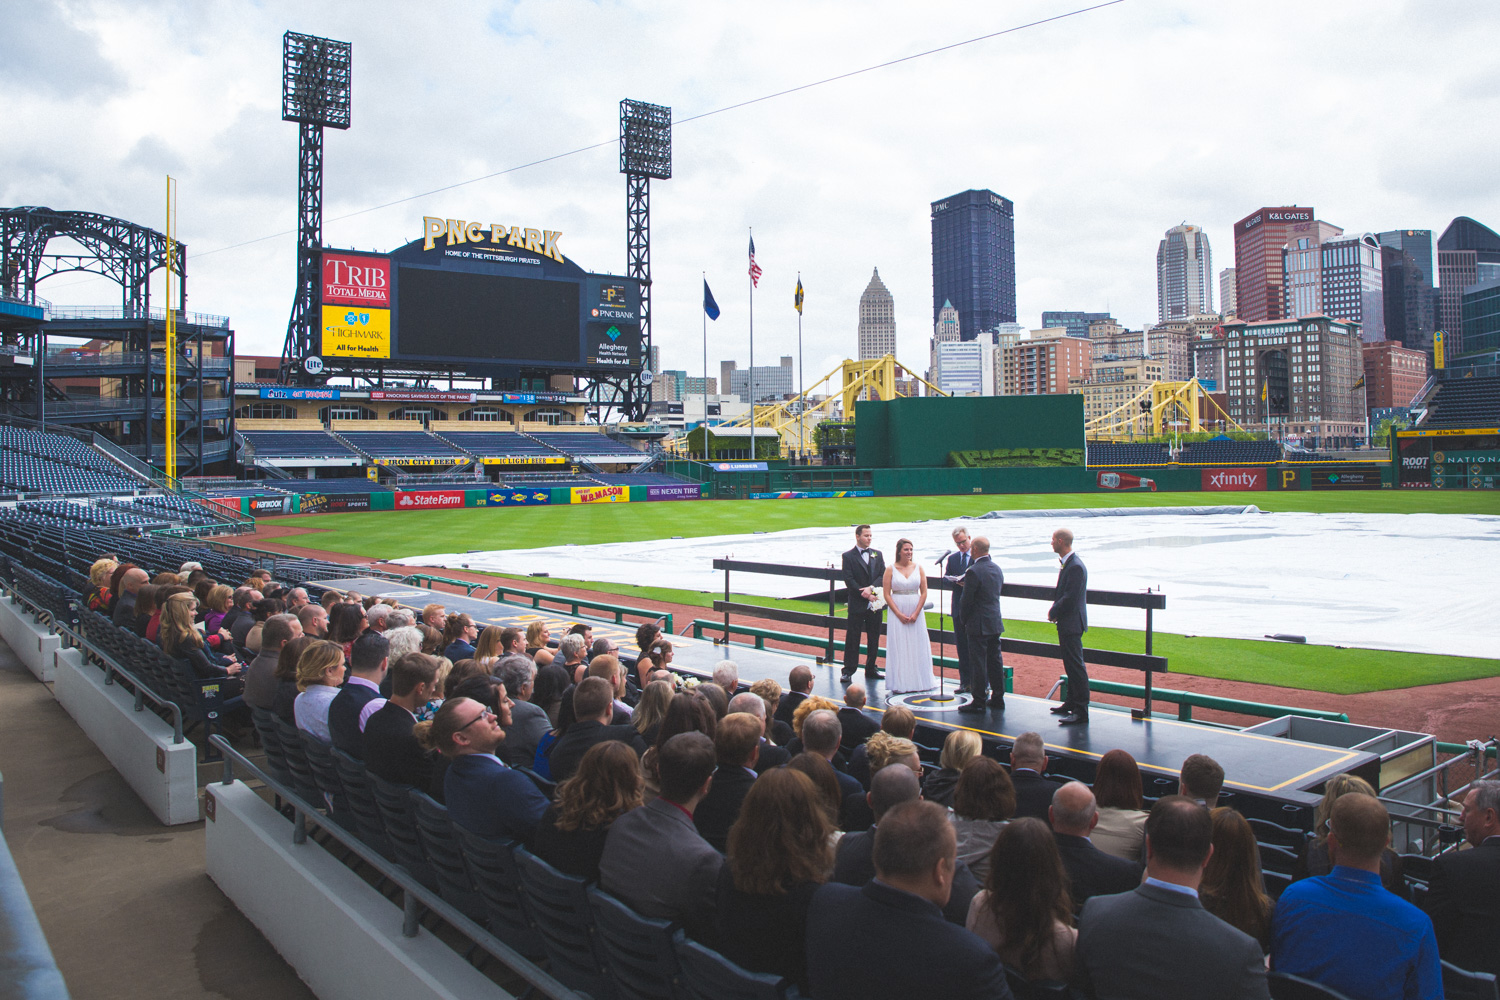 Wedding At Pnc Park Convention Center Downtown Pittsburgh